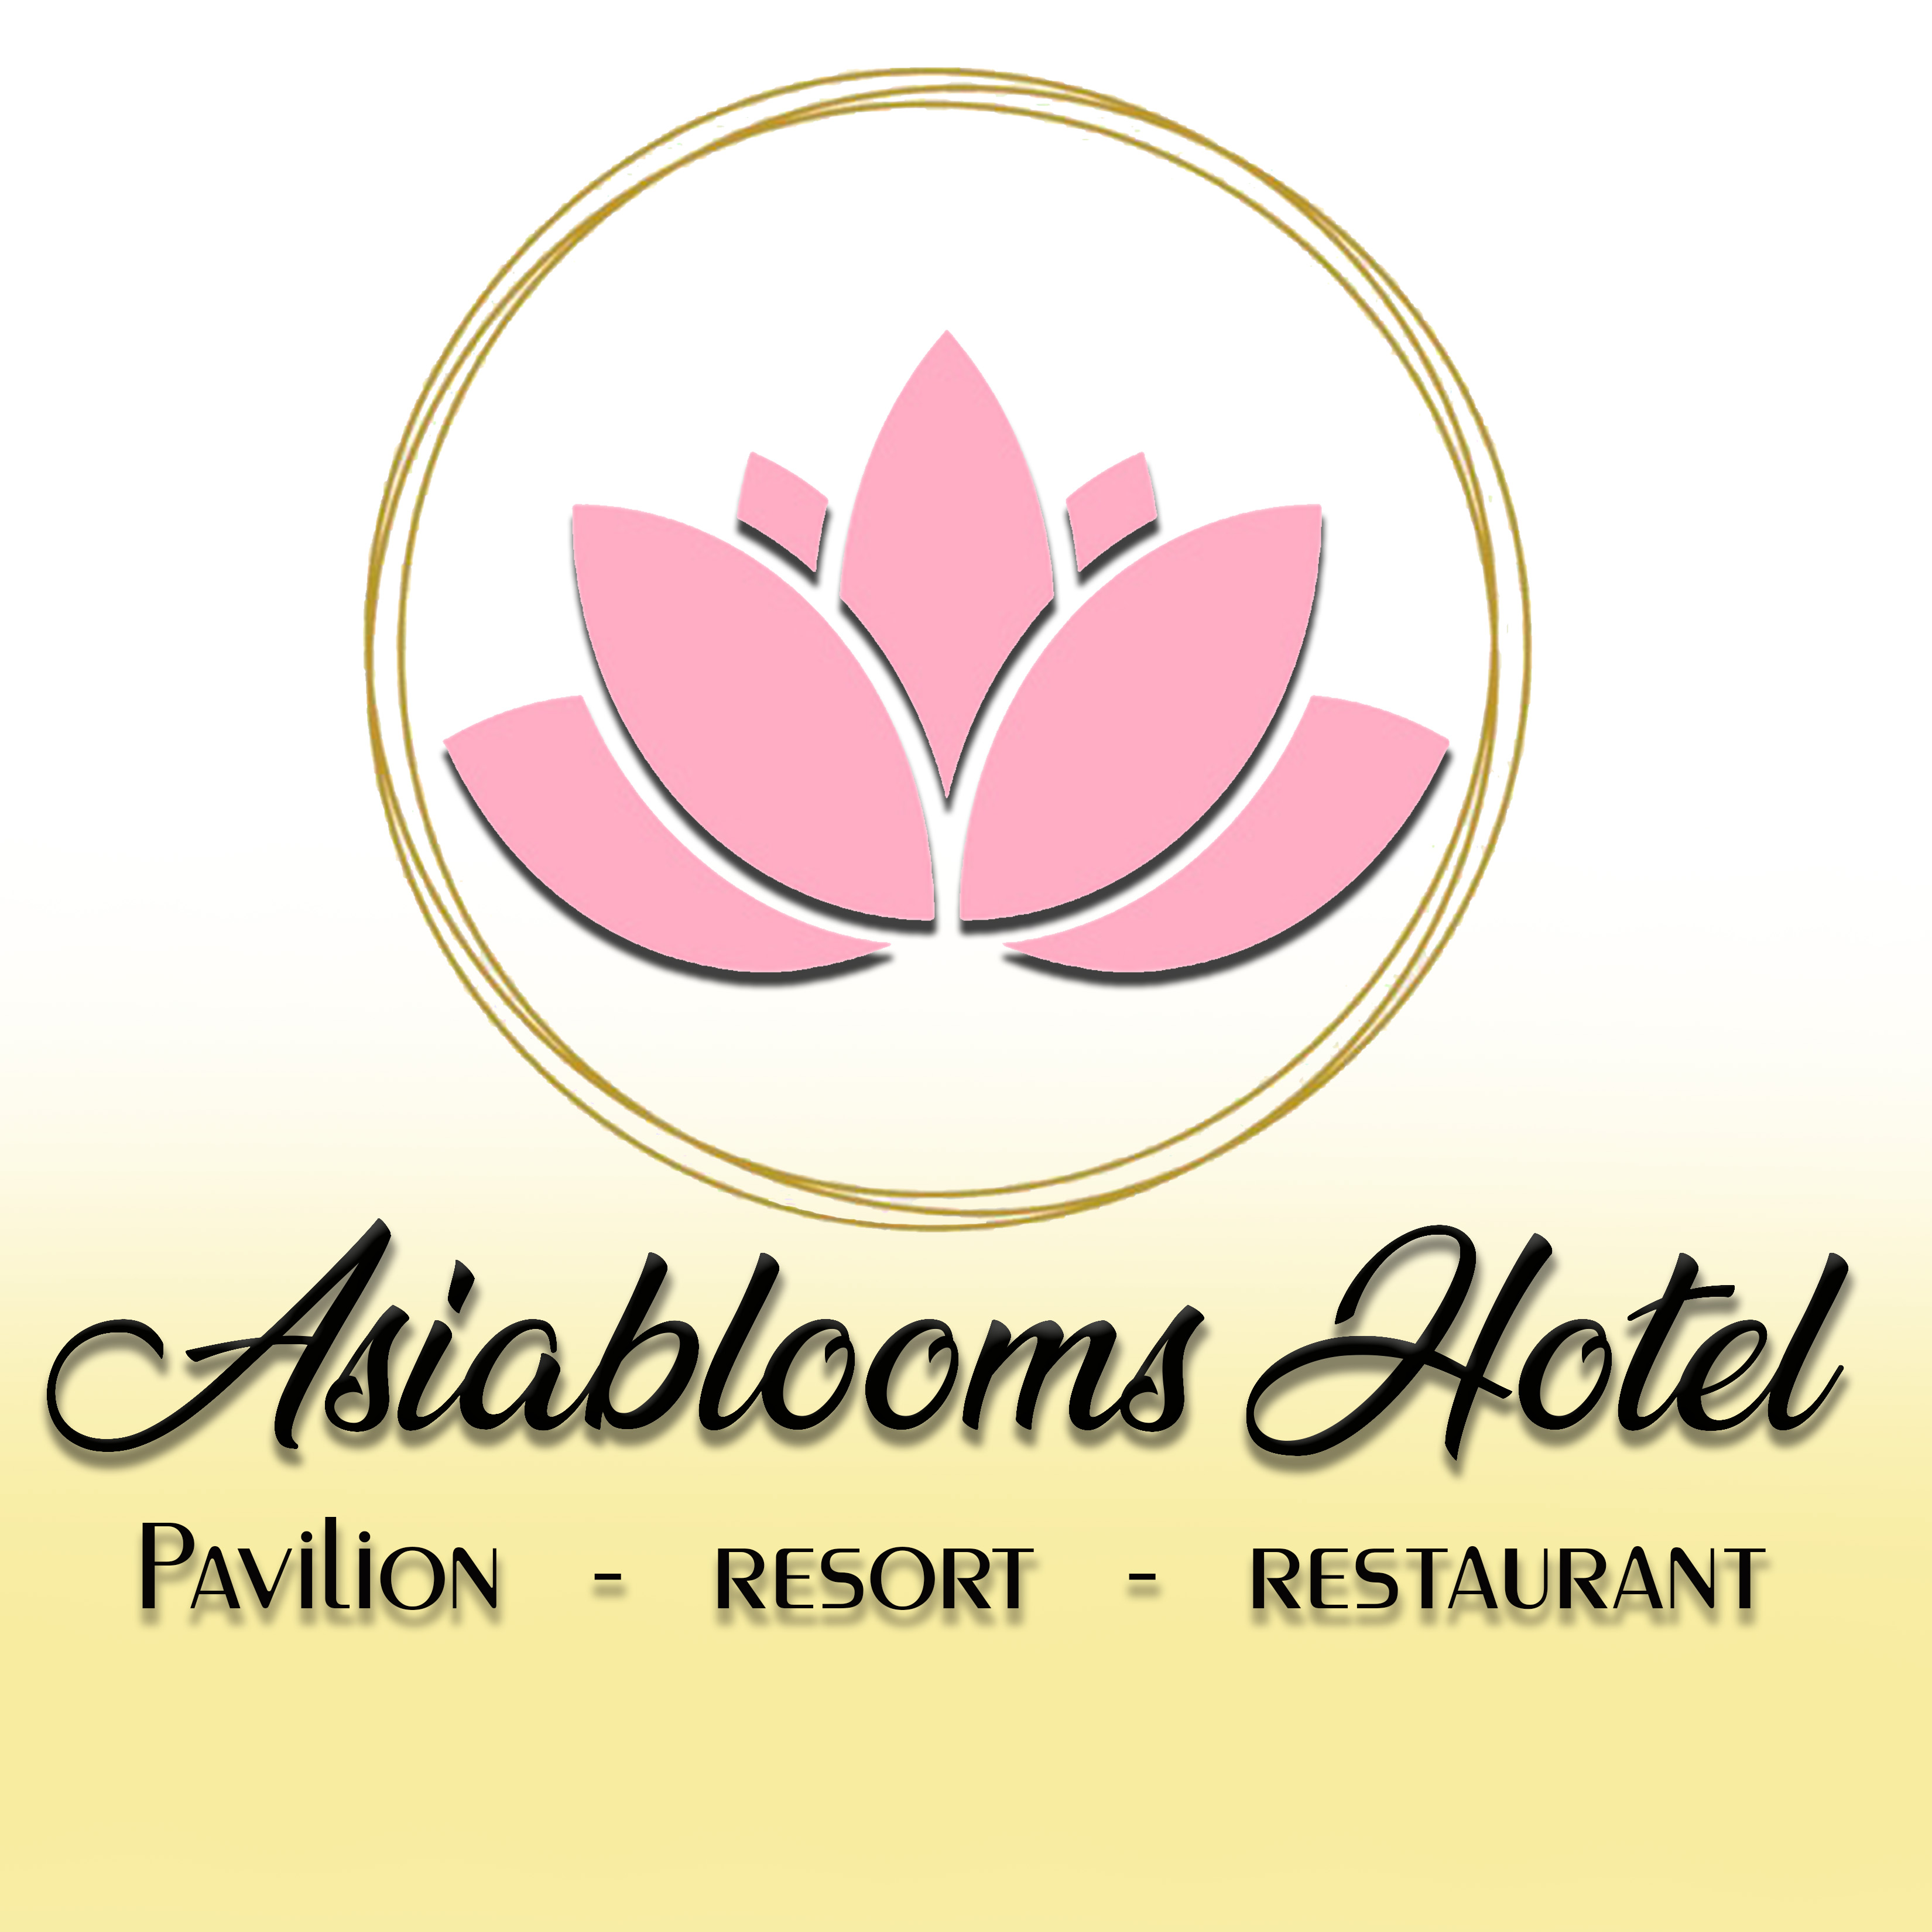 Asiablooms Hotel